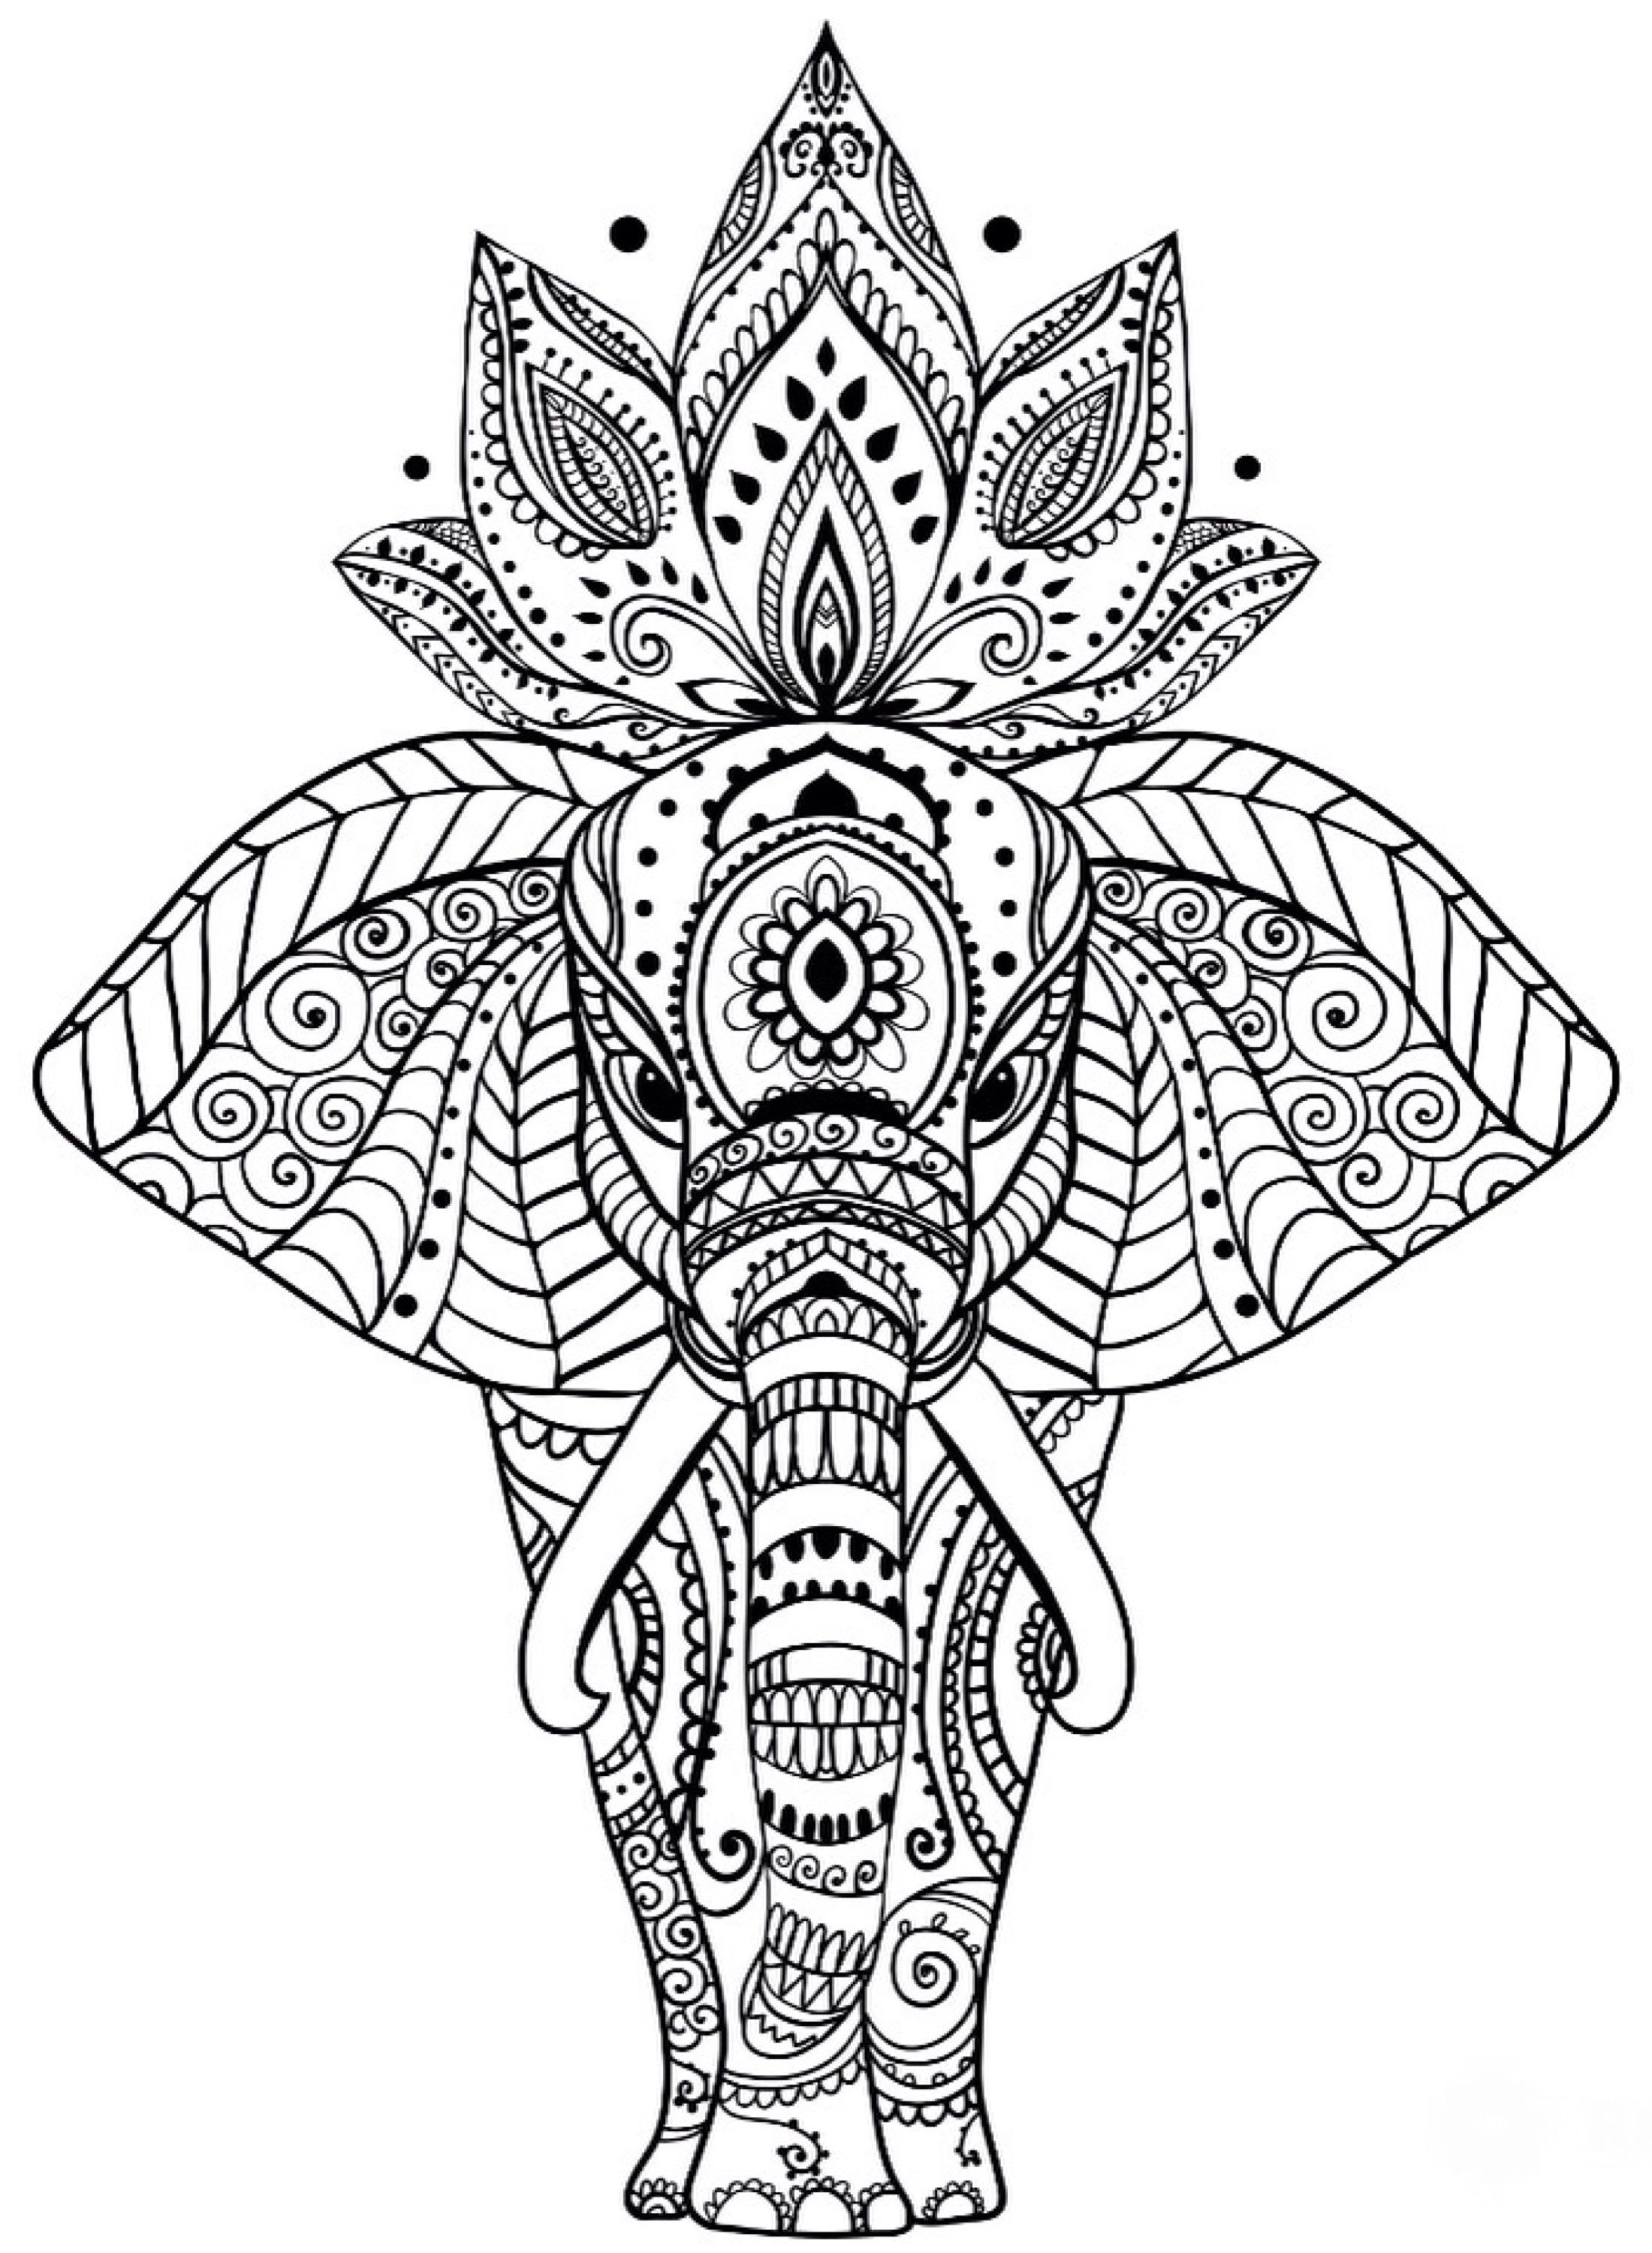 22 free mandala coloring pages pdf collection coloring sheets. Black Bedroom Furniture Sets. Home Design Ideas